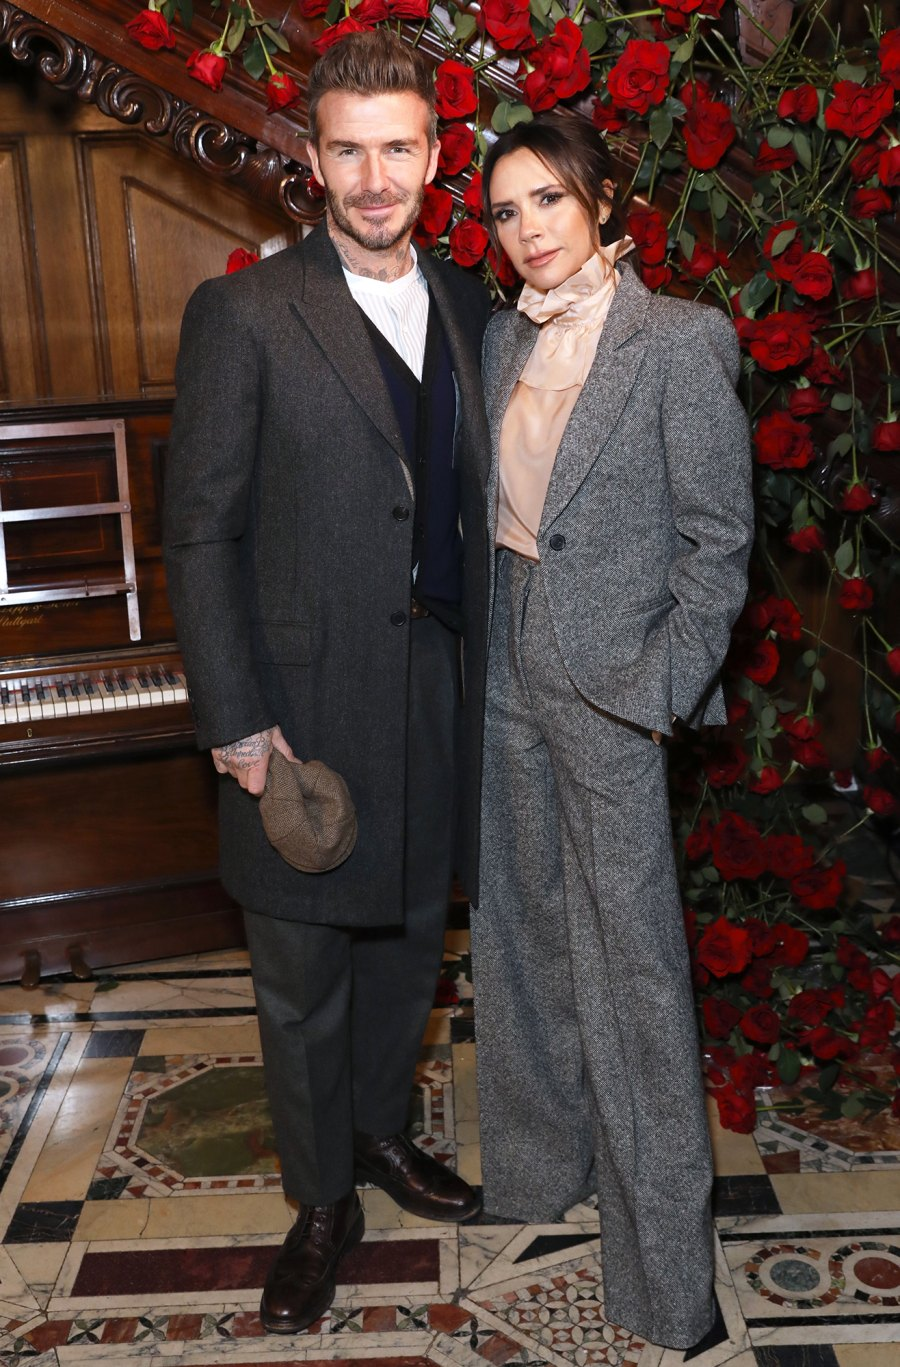 Proof David and Victoria Beckham May Be the Most Stylish Couple Ever